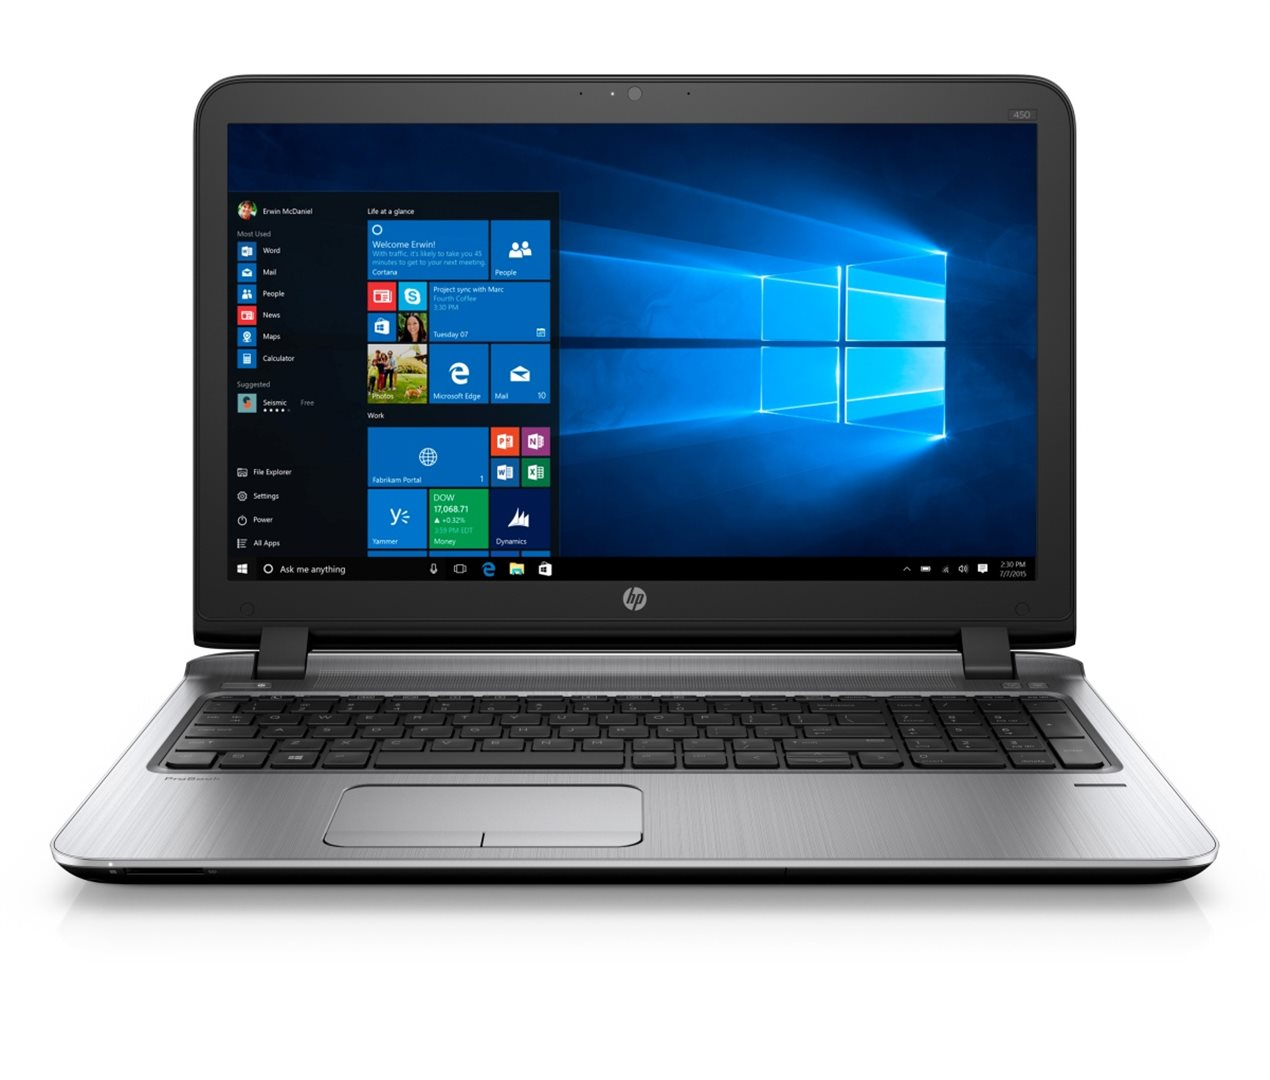 "HP ProBook 450 G3 15.6"" HD/i3-6100U/4GB/500GB/DVD/VGA/HDMI/RJ45/WIFI/B"